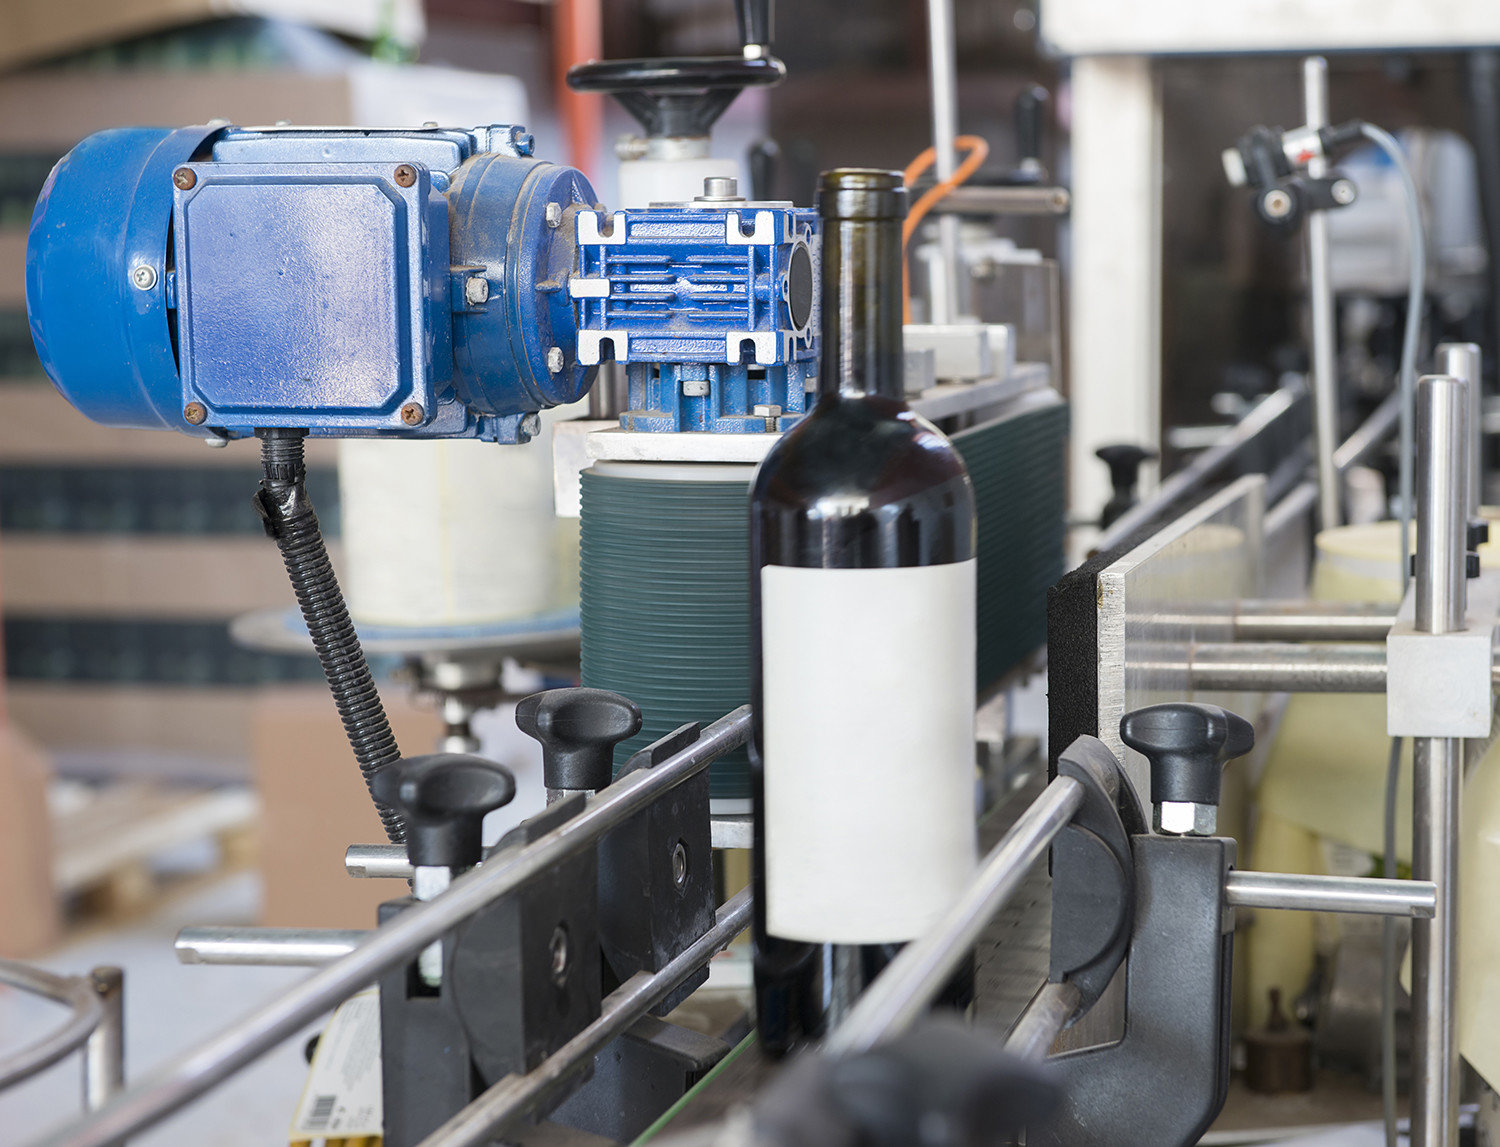 Manufacturing Applications - Product Labeling and Tracking|Australia CipherLab world leader in AIDC solutions